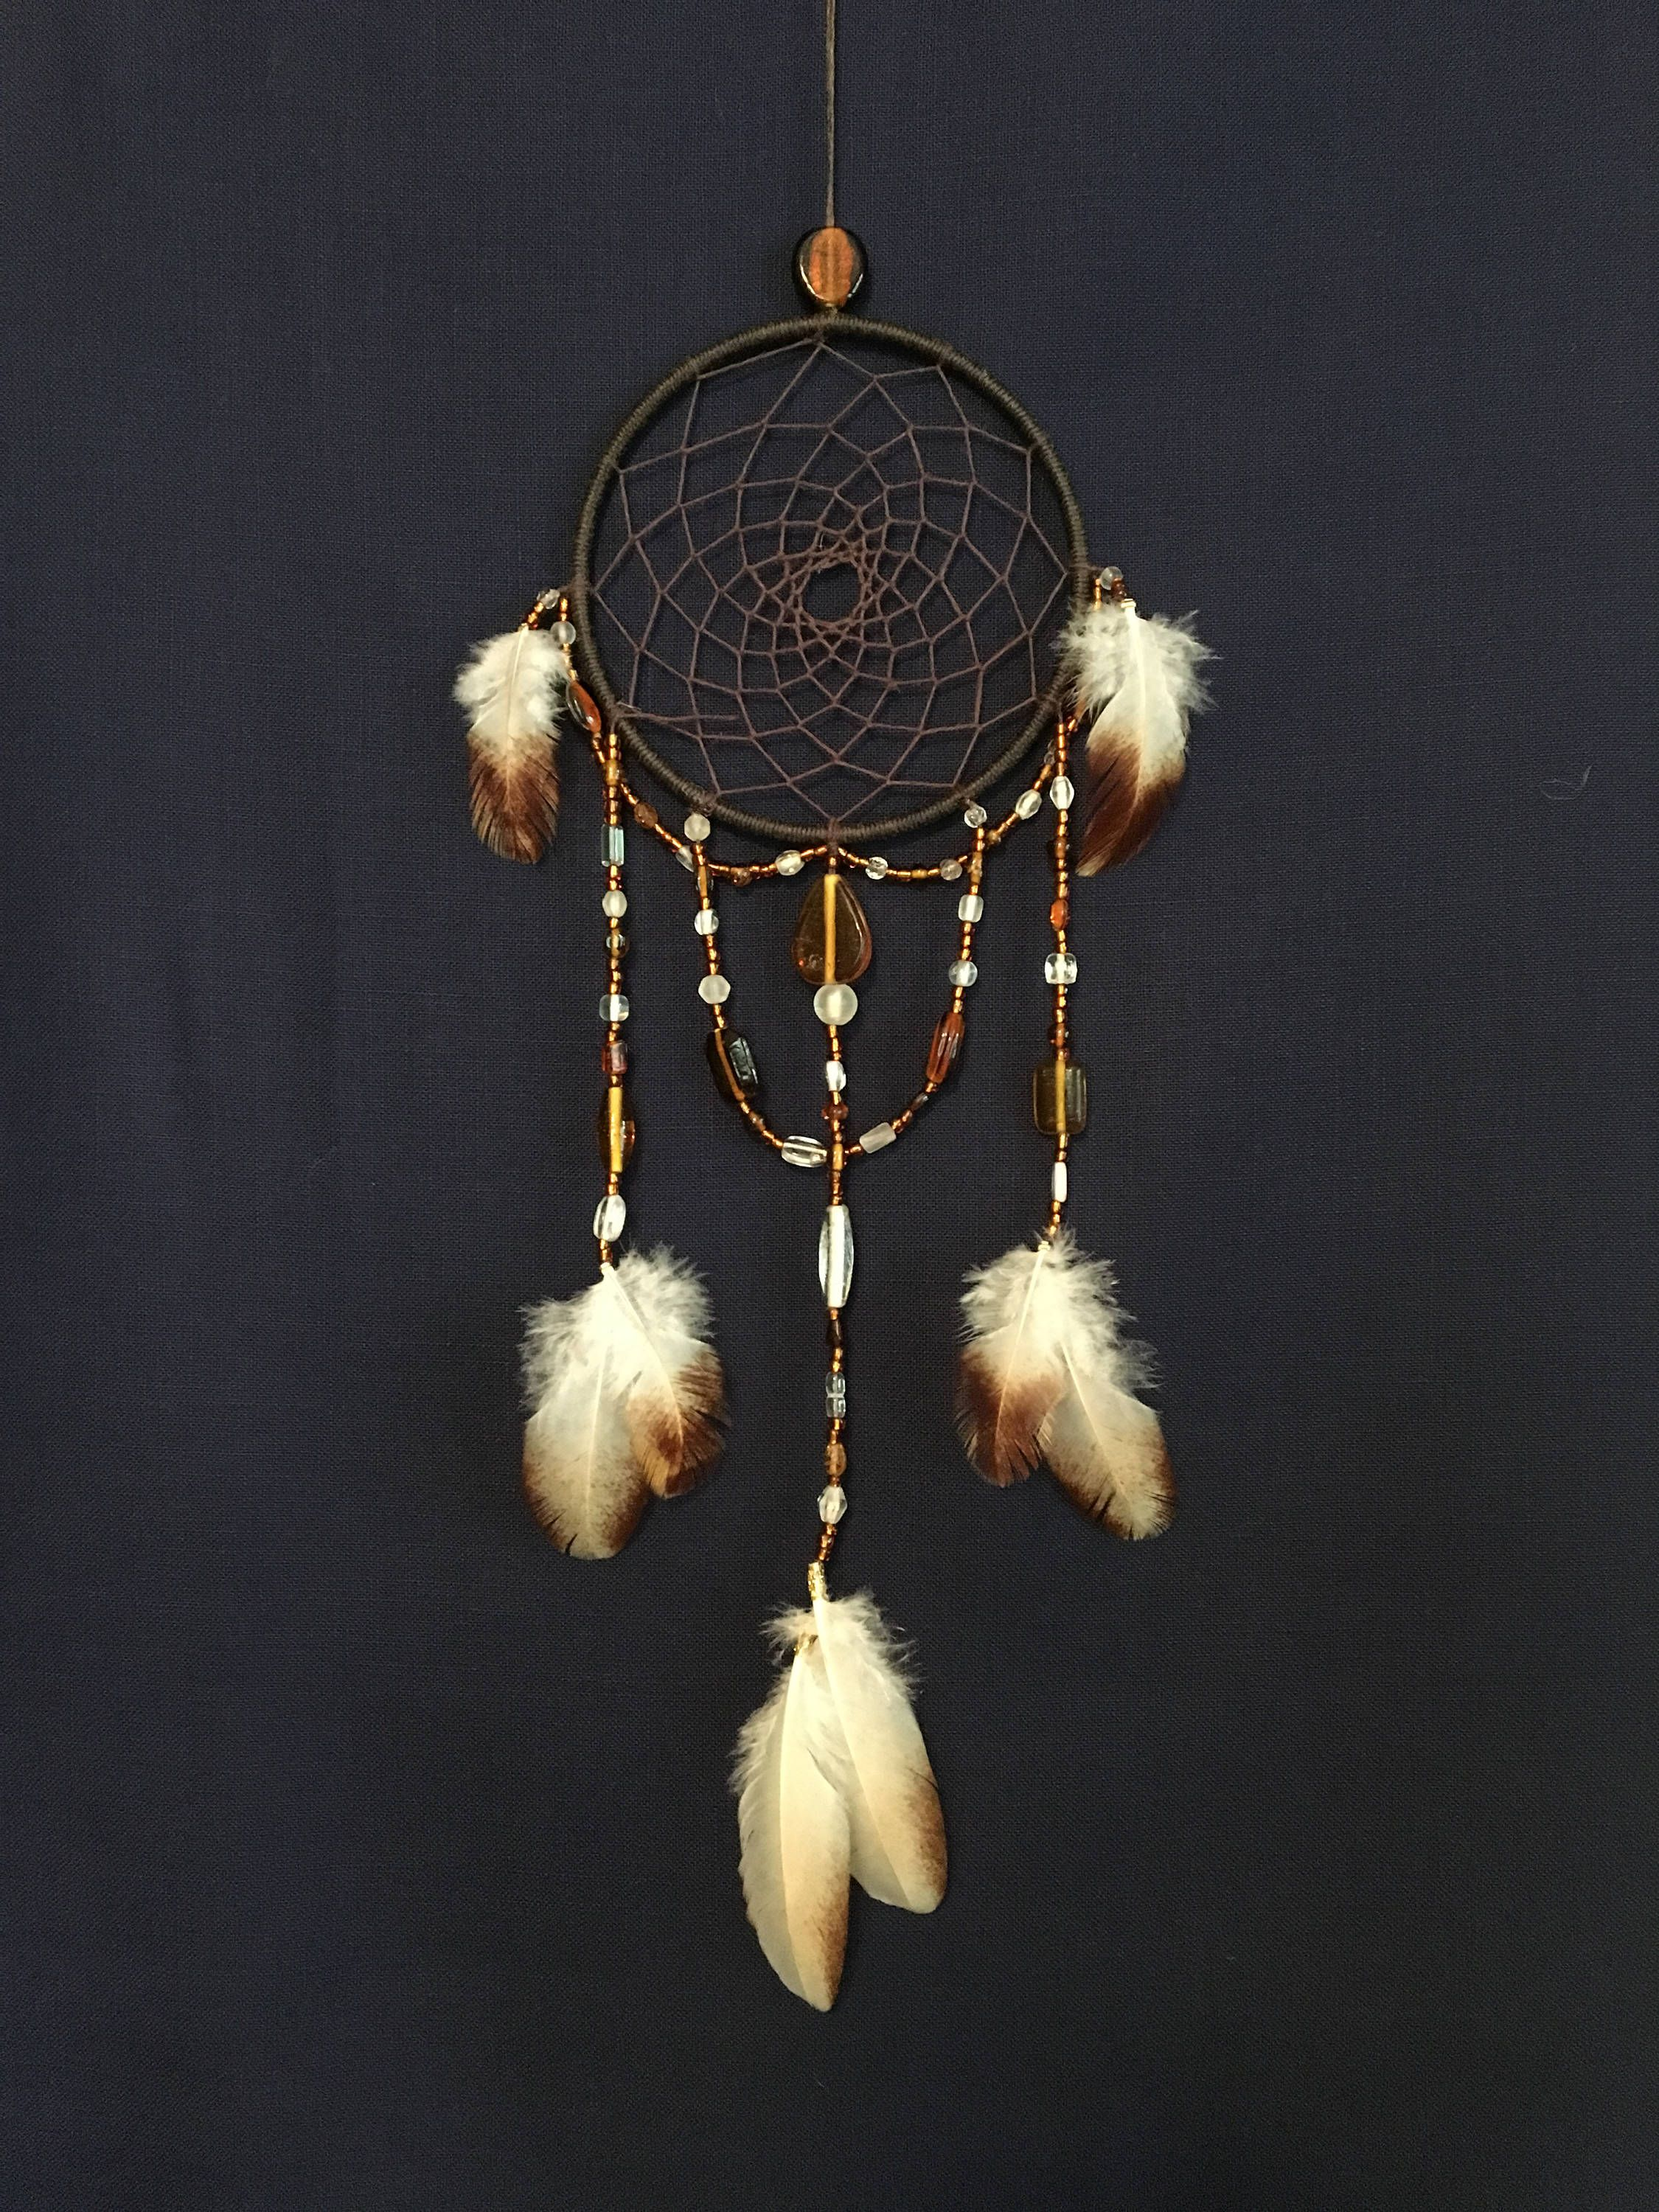 Dream Catcher With Feathers Car Or Wall Hanging Decor Ornament Handmade 2019 Lot